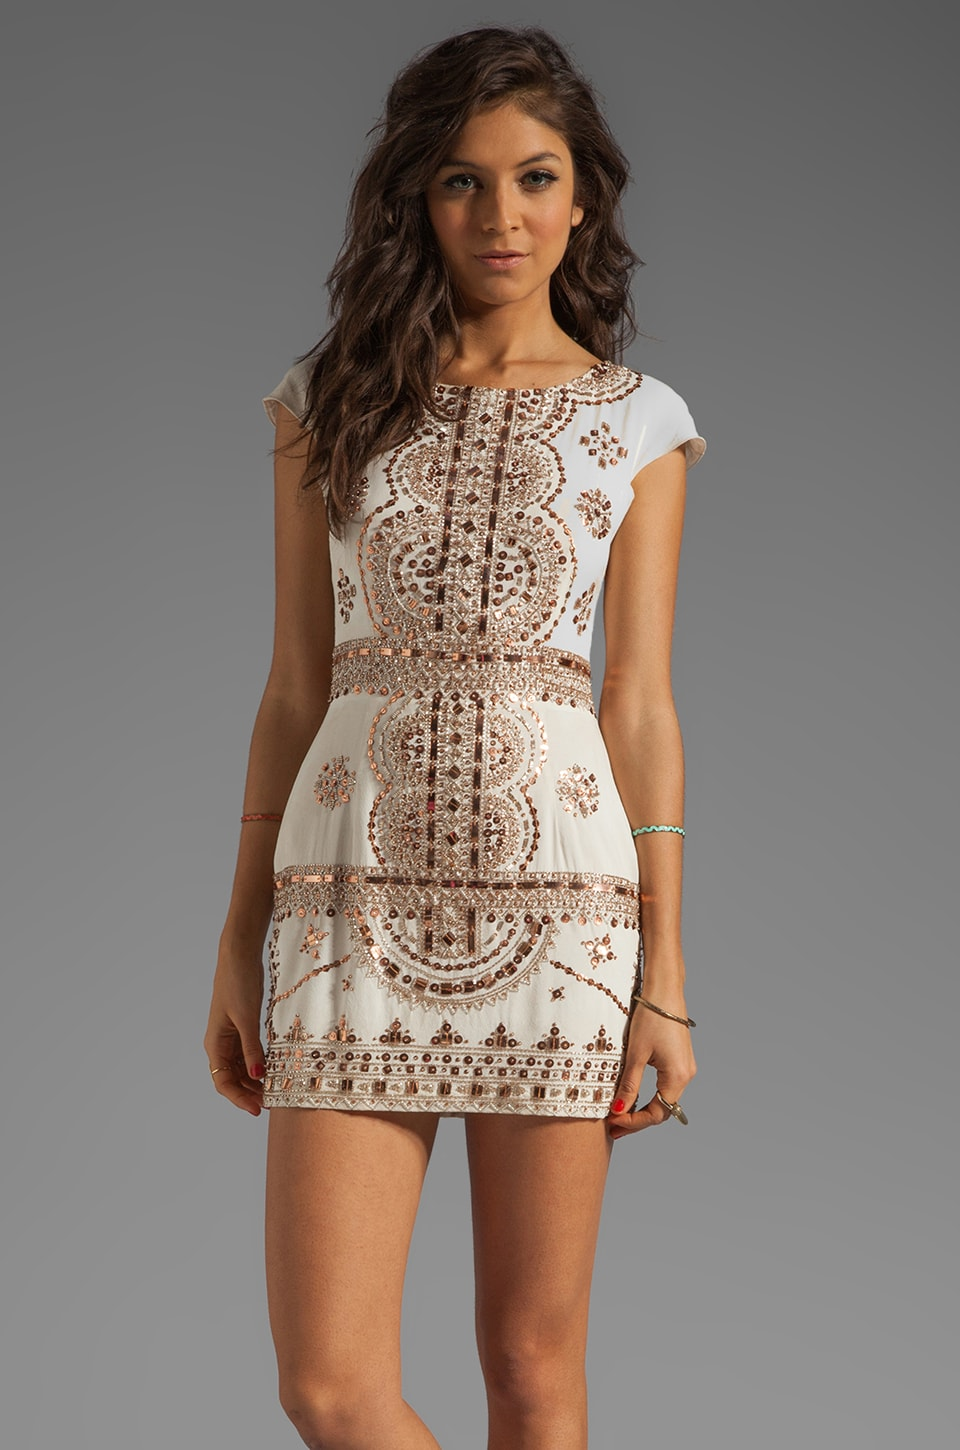 renzo + kai Lola-Lola Dress in Ivory/Rosegold